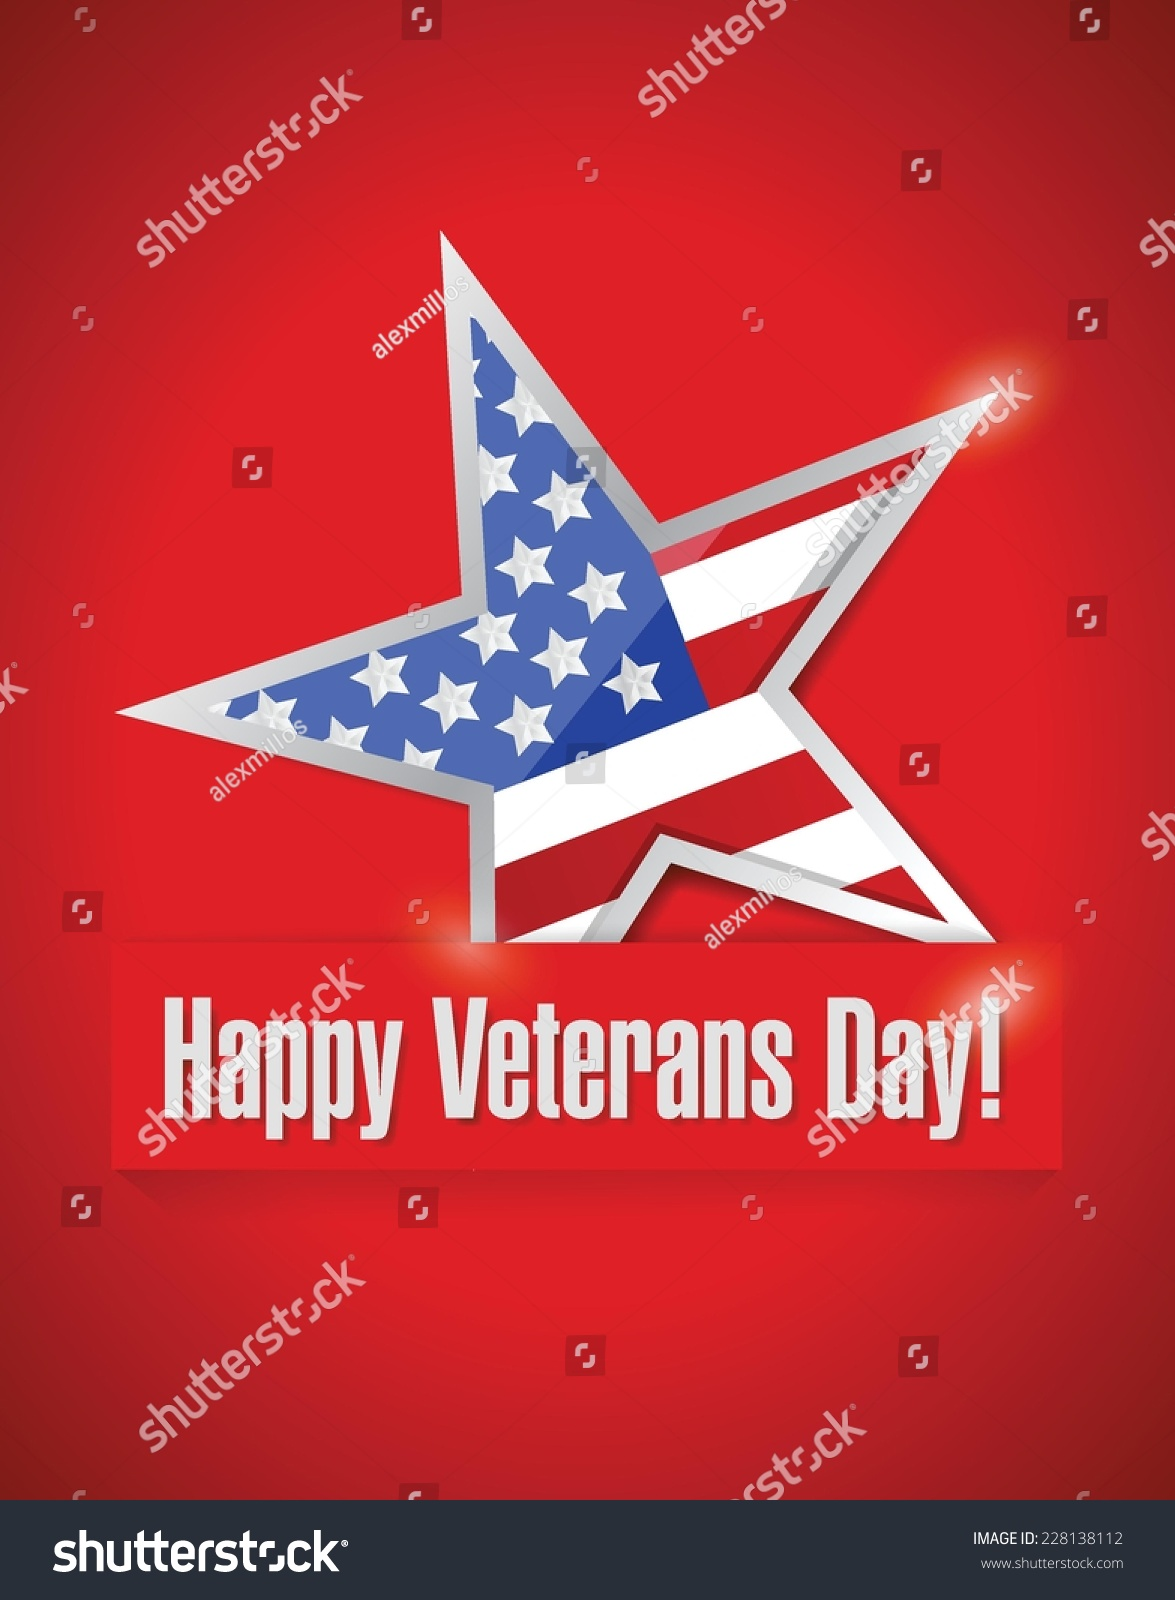 Happy veterans day card illustration design over a red background id 228138112 m4hsunfo